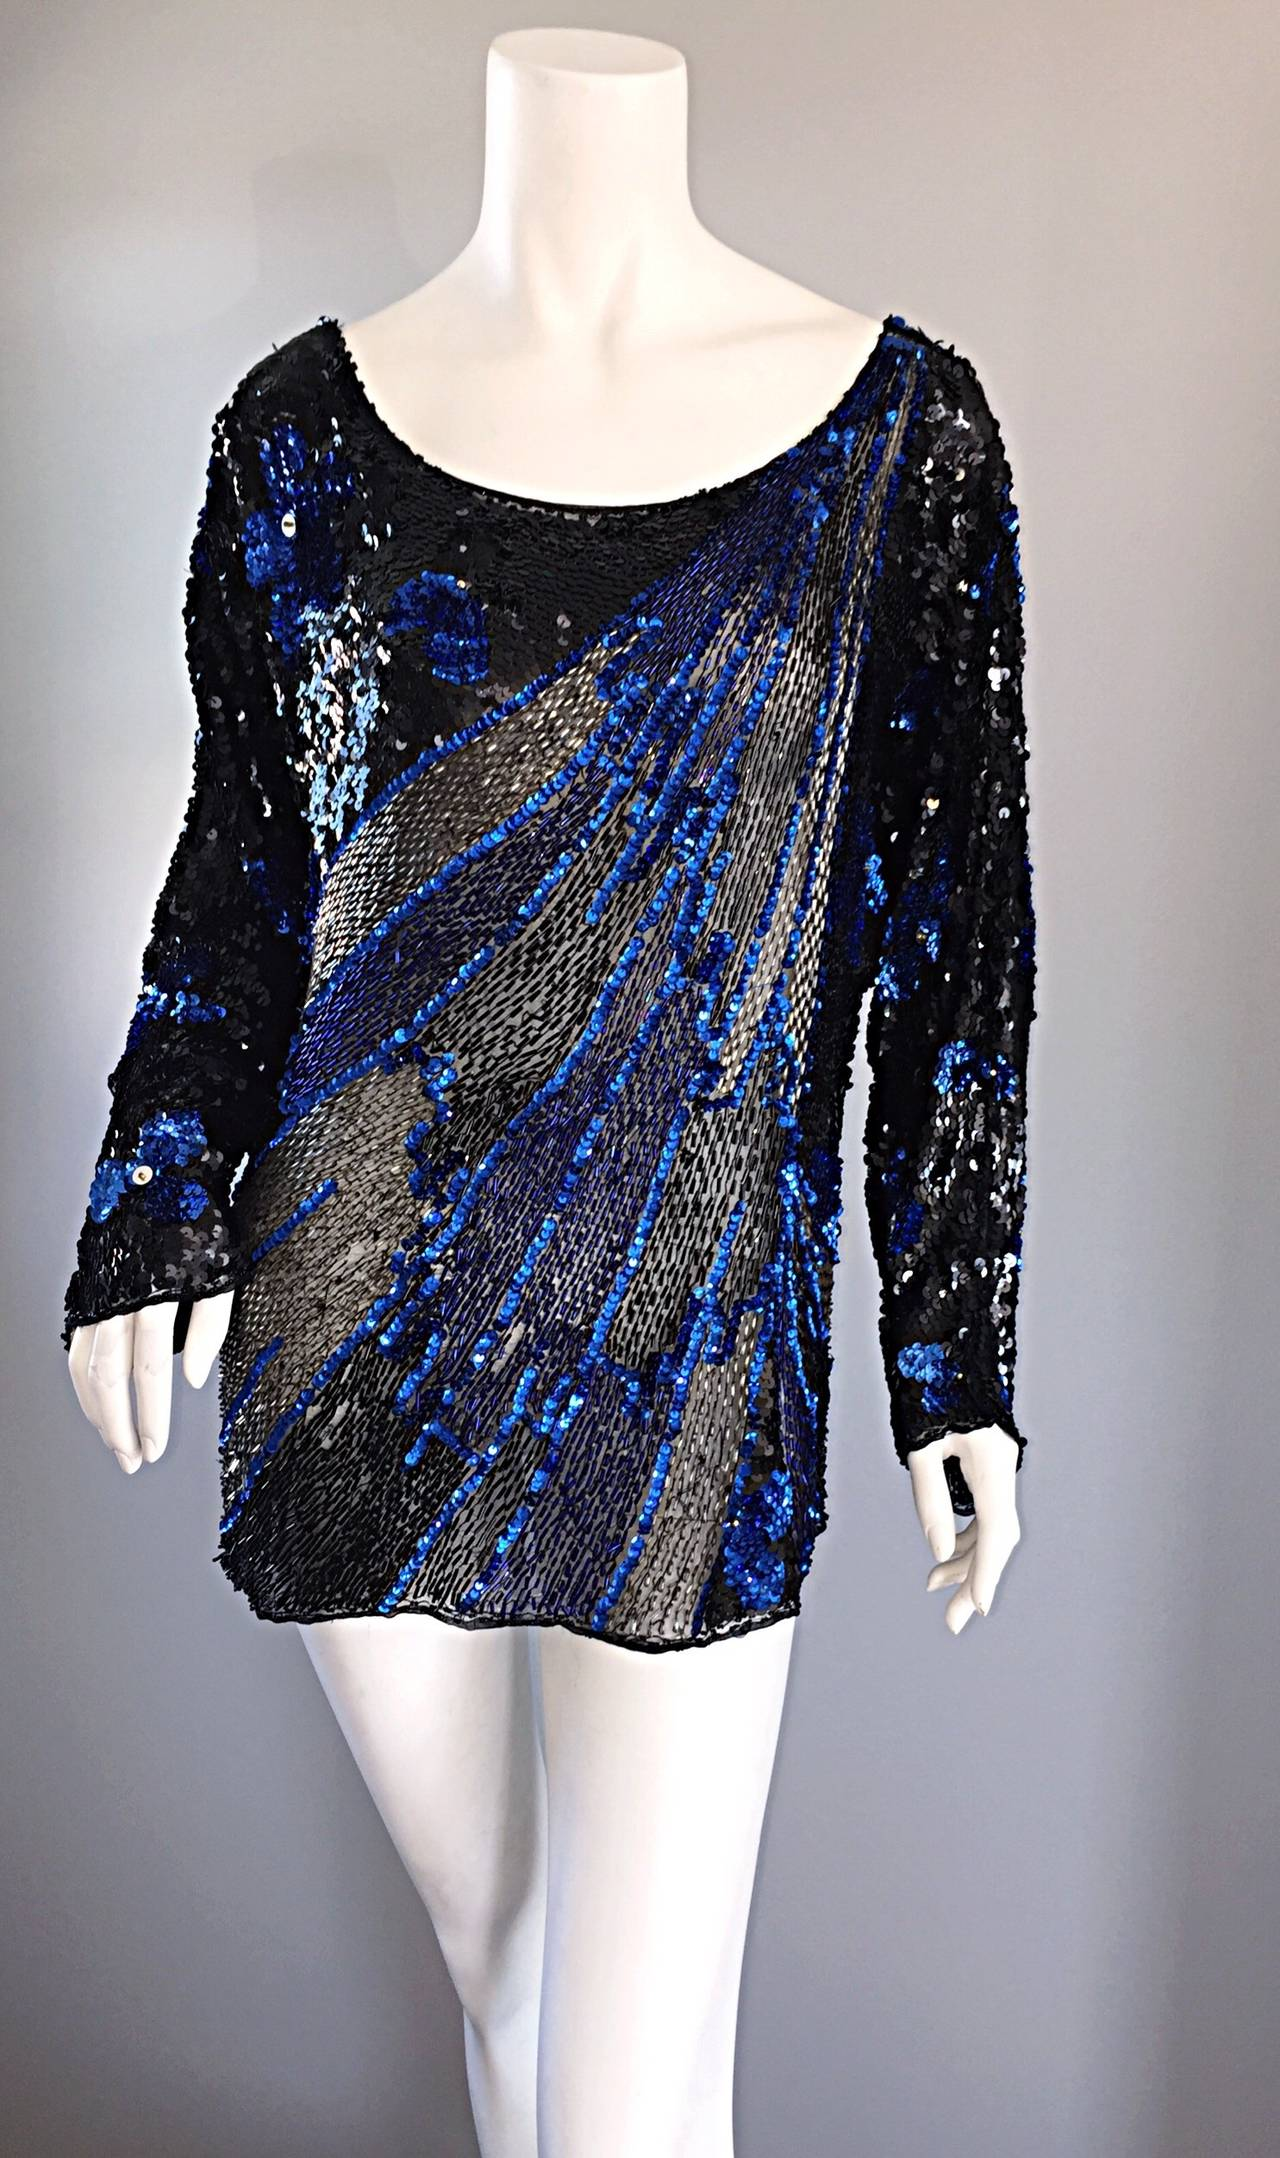 Black + Blue Sequined and Beaded Silk Fireworks & Flowers Top Attr. to Halston 2